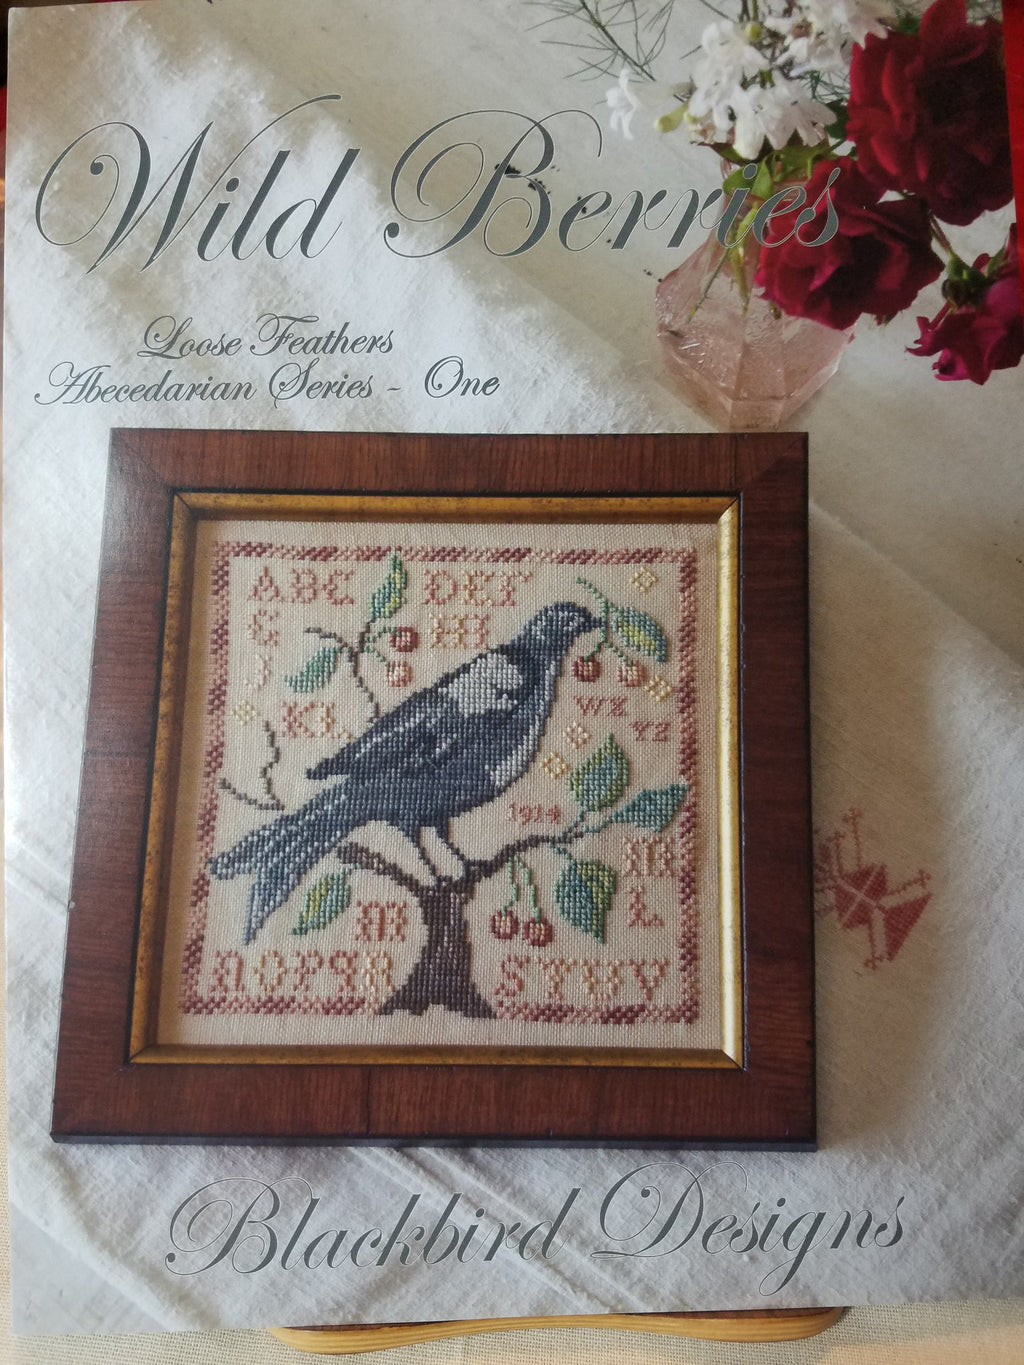 Loose Feathers - Wild Berries - Cross Stitch Pattern by Blackbird Designs